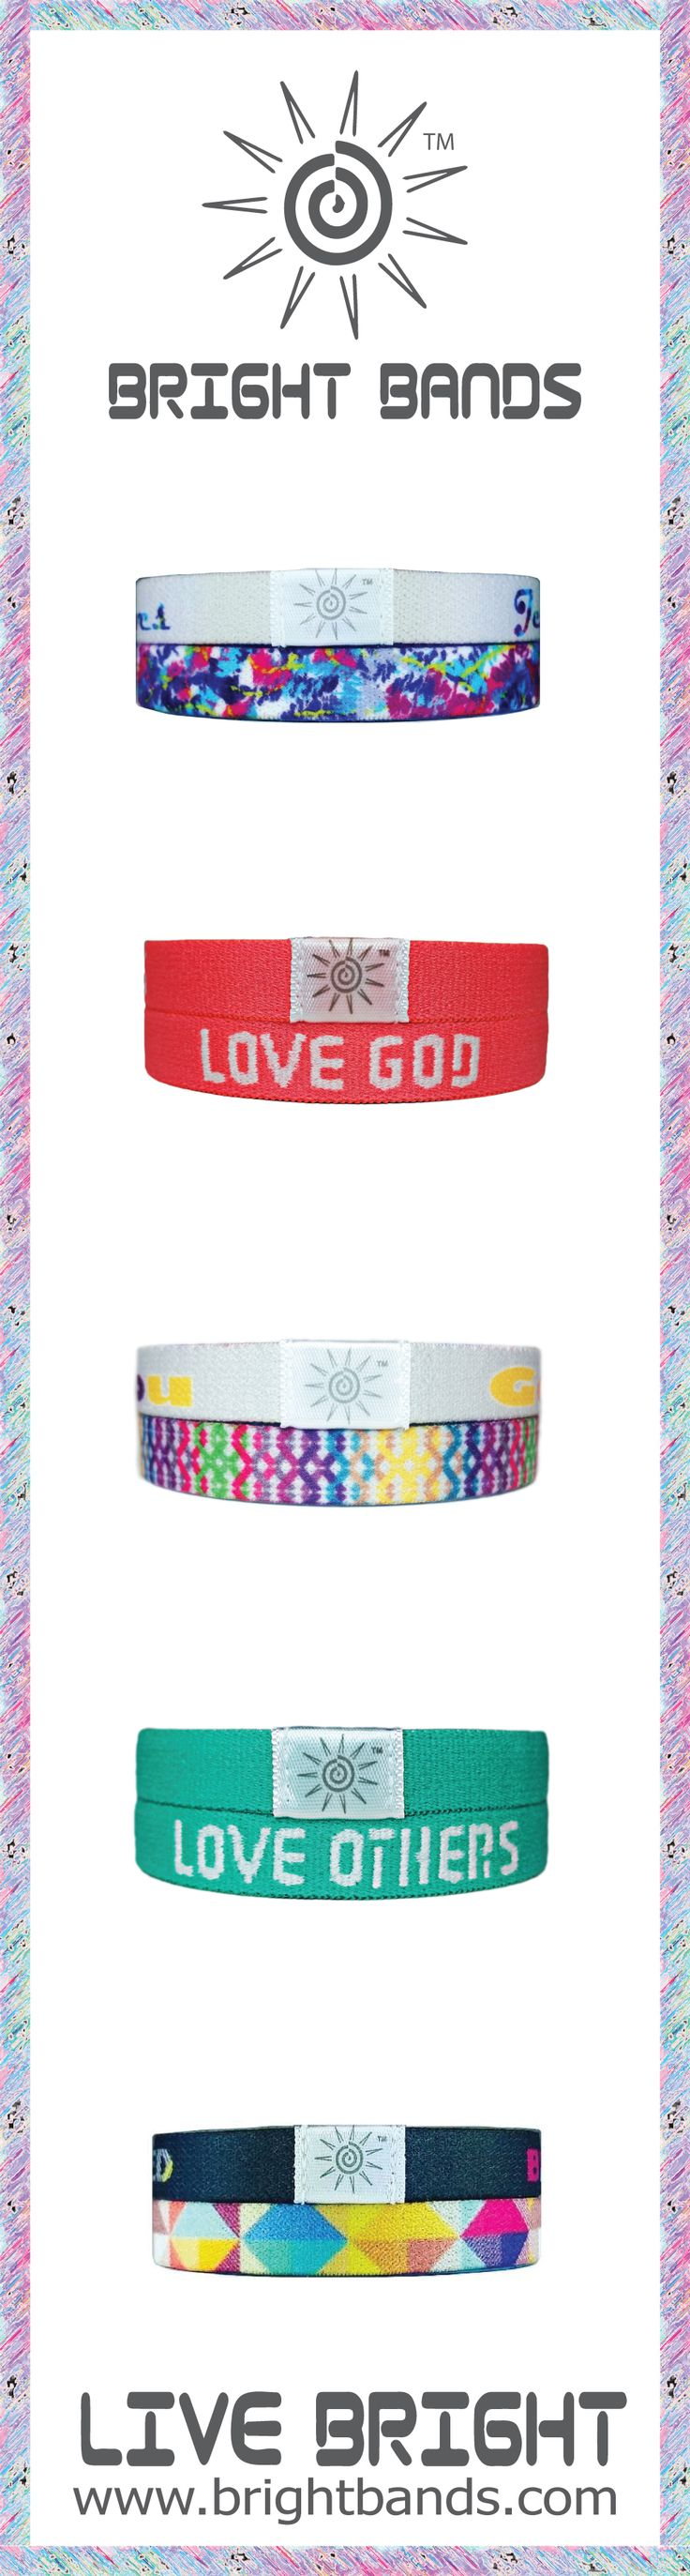 Bright Bands are the most comfortable bracelets ever. There are so many colors and phrases to choose from. These wristbands make perfect gifts. Get you and your friends some today at www.brightbands.com